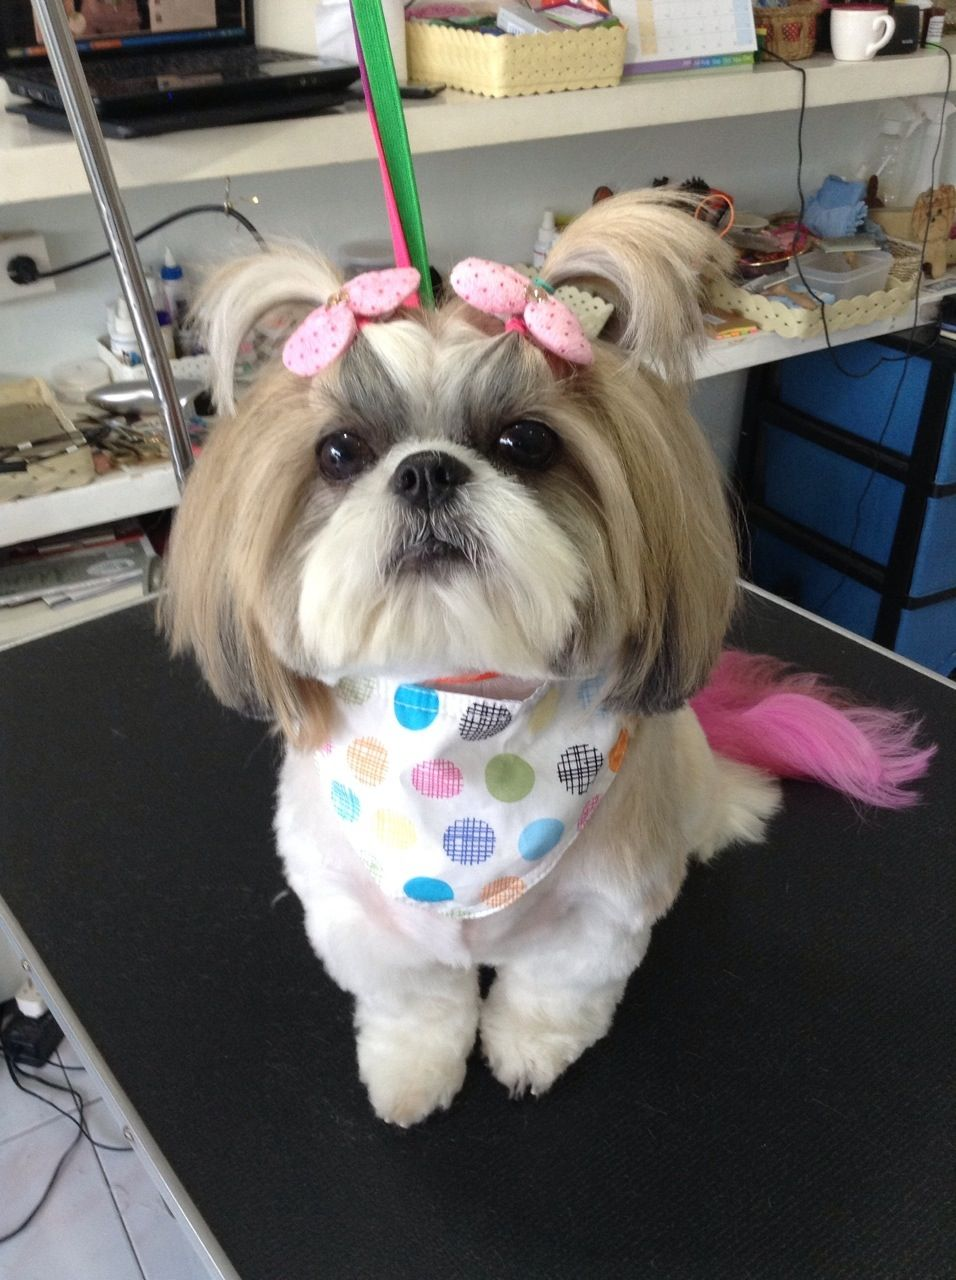 Dress Up From Salon Shih Tzu Dog Pet Fashion Shih Tzu Clothes